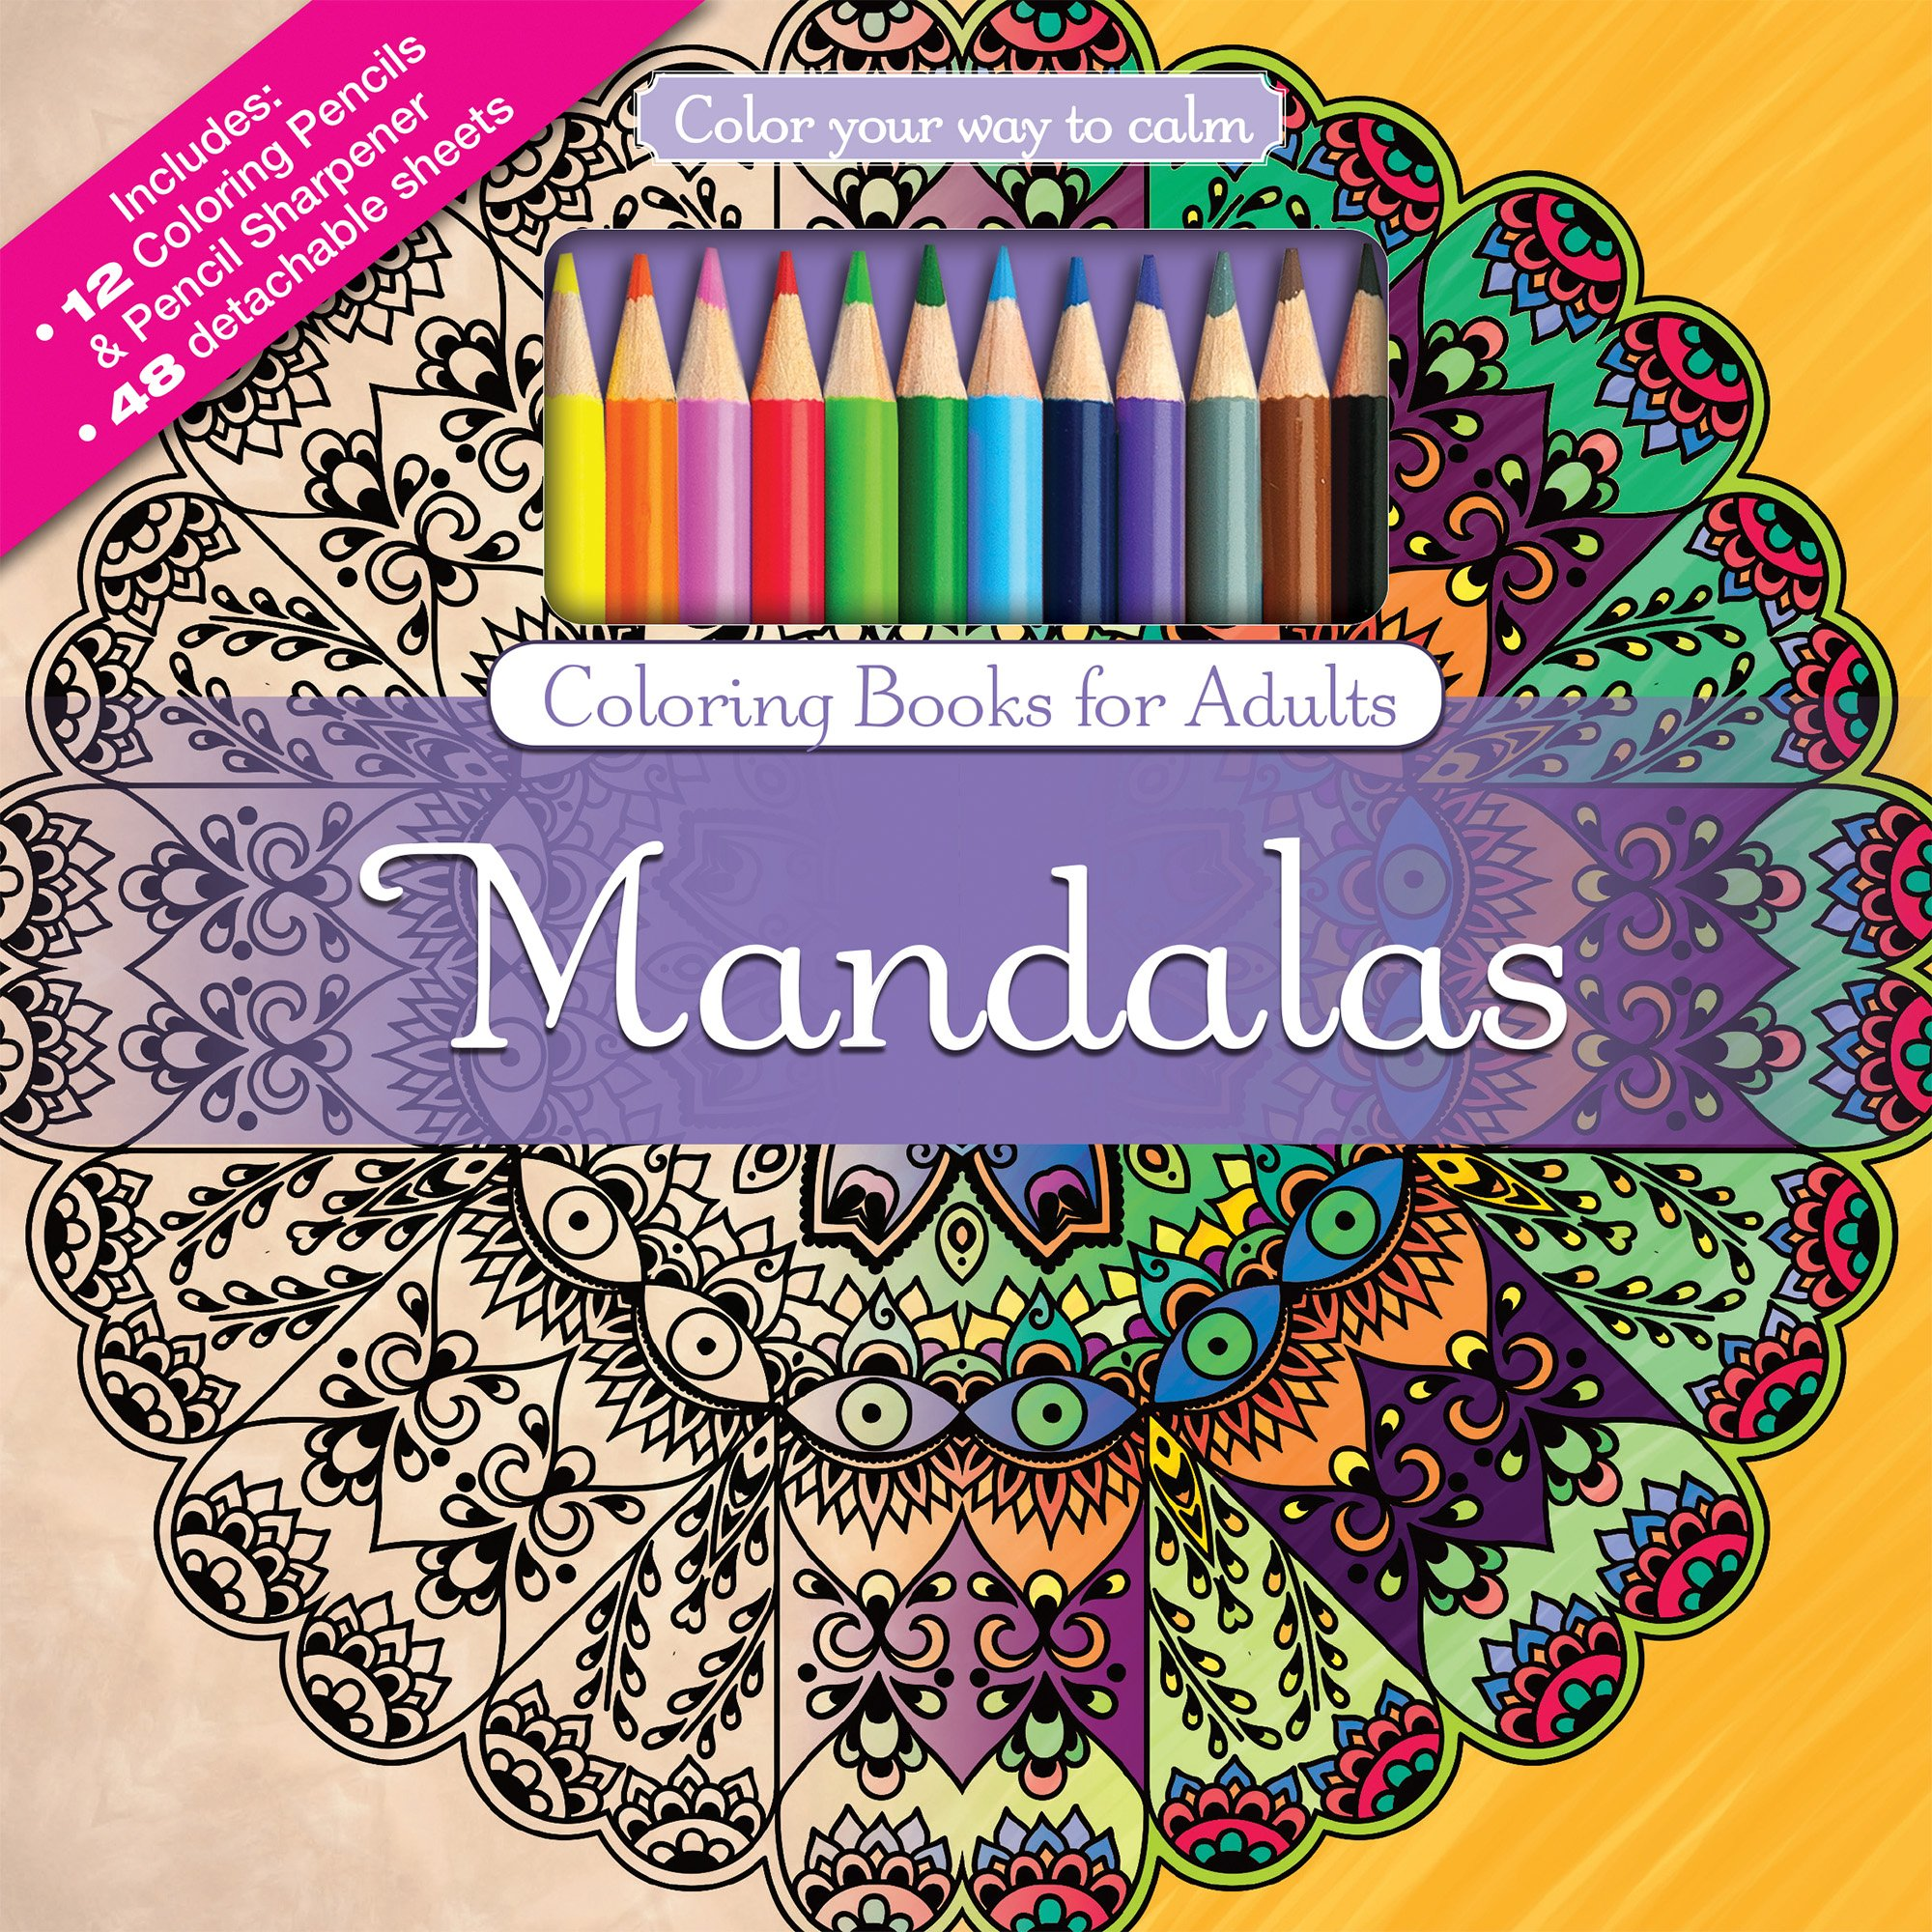 amazoncom mandalas adult coloring book set with 24 colored pencils and pencil sharpener included color your way to calm 9781988137254 newbourne media